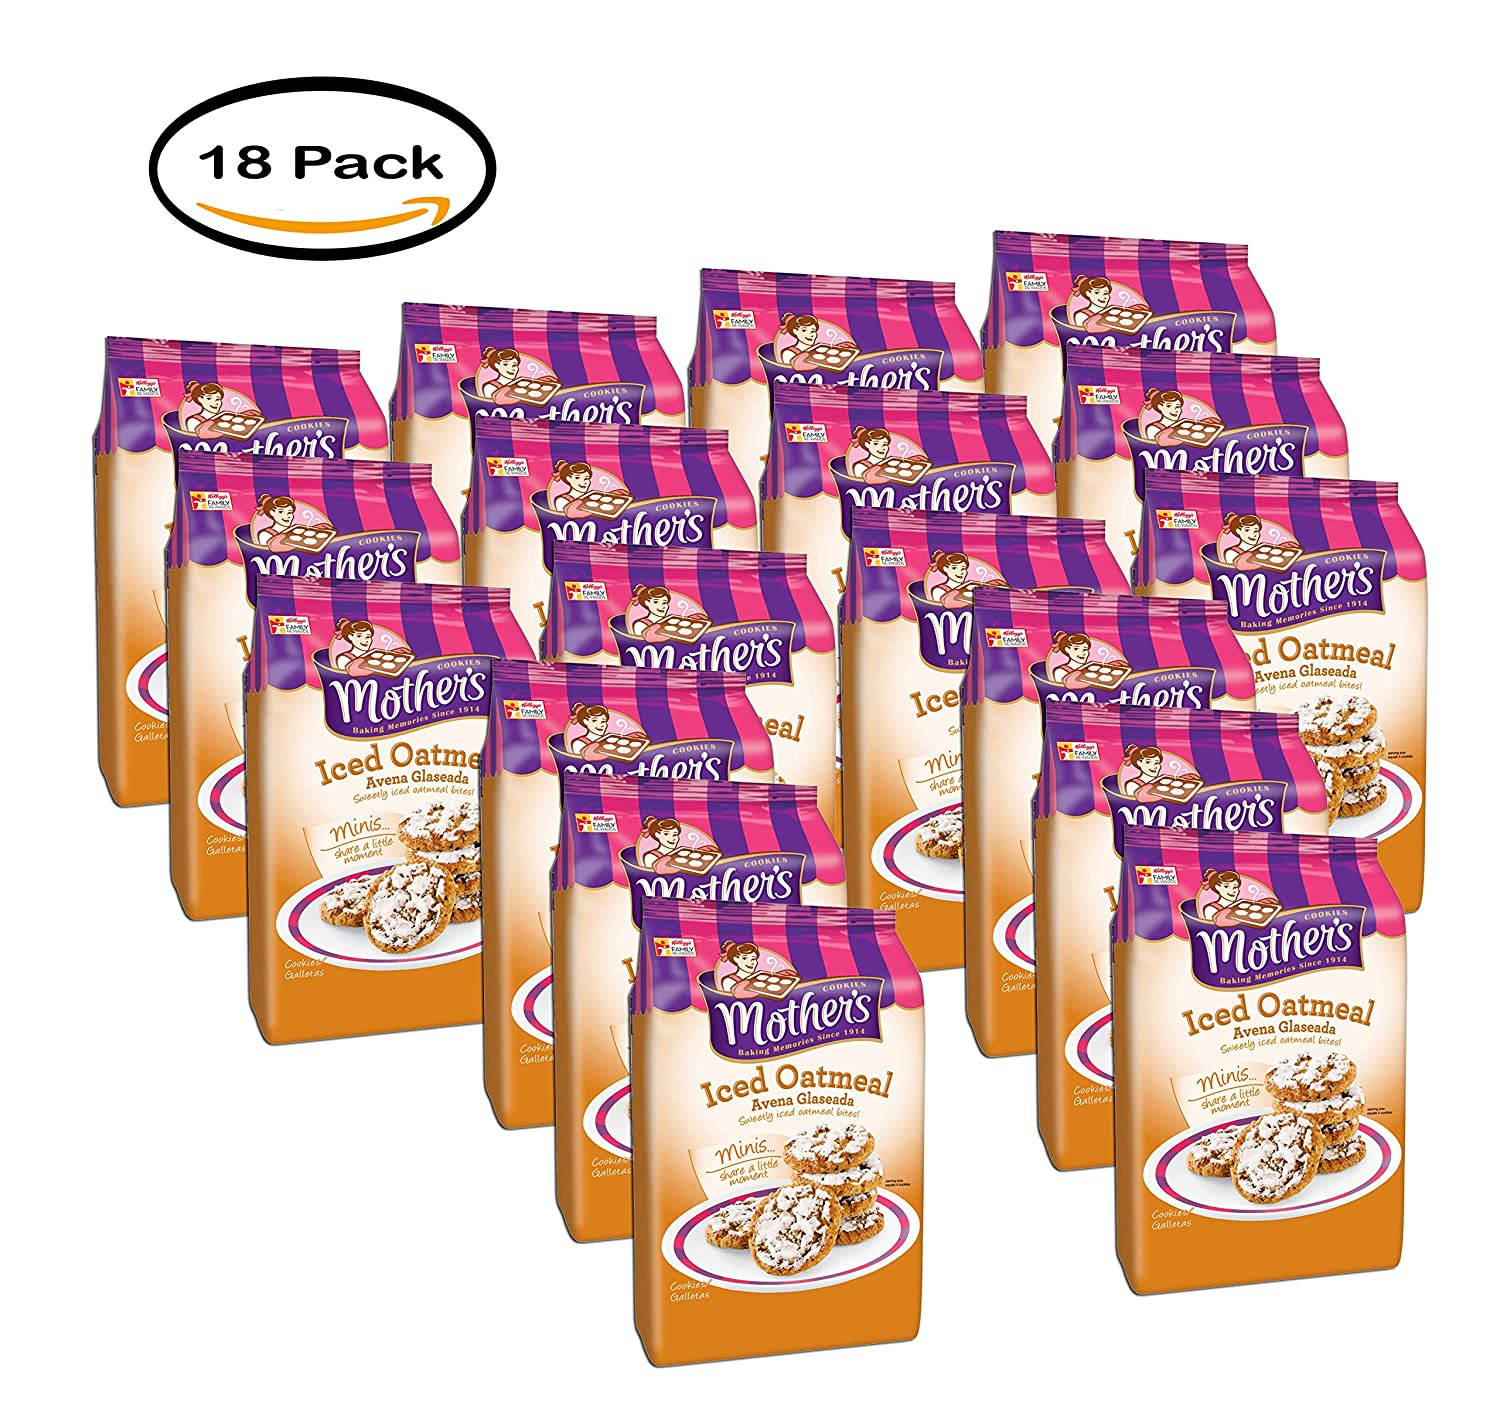 Amazon.com : PACK OF 18 - Mothers Iced Oatmeal Cookies ...